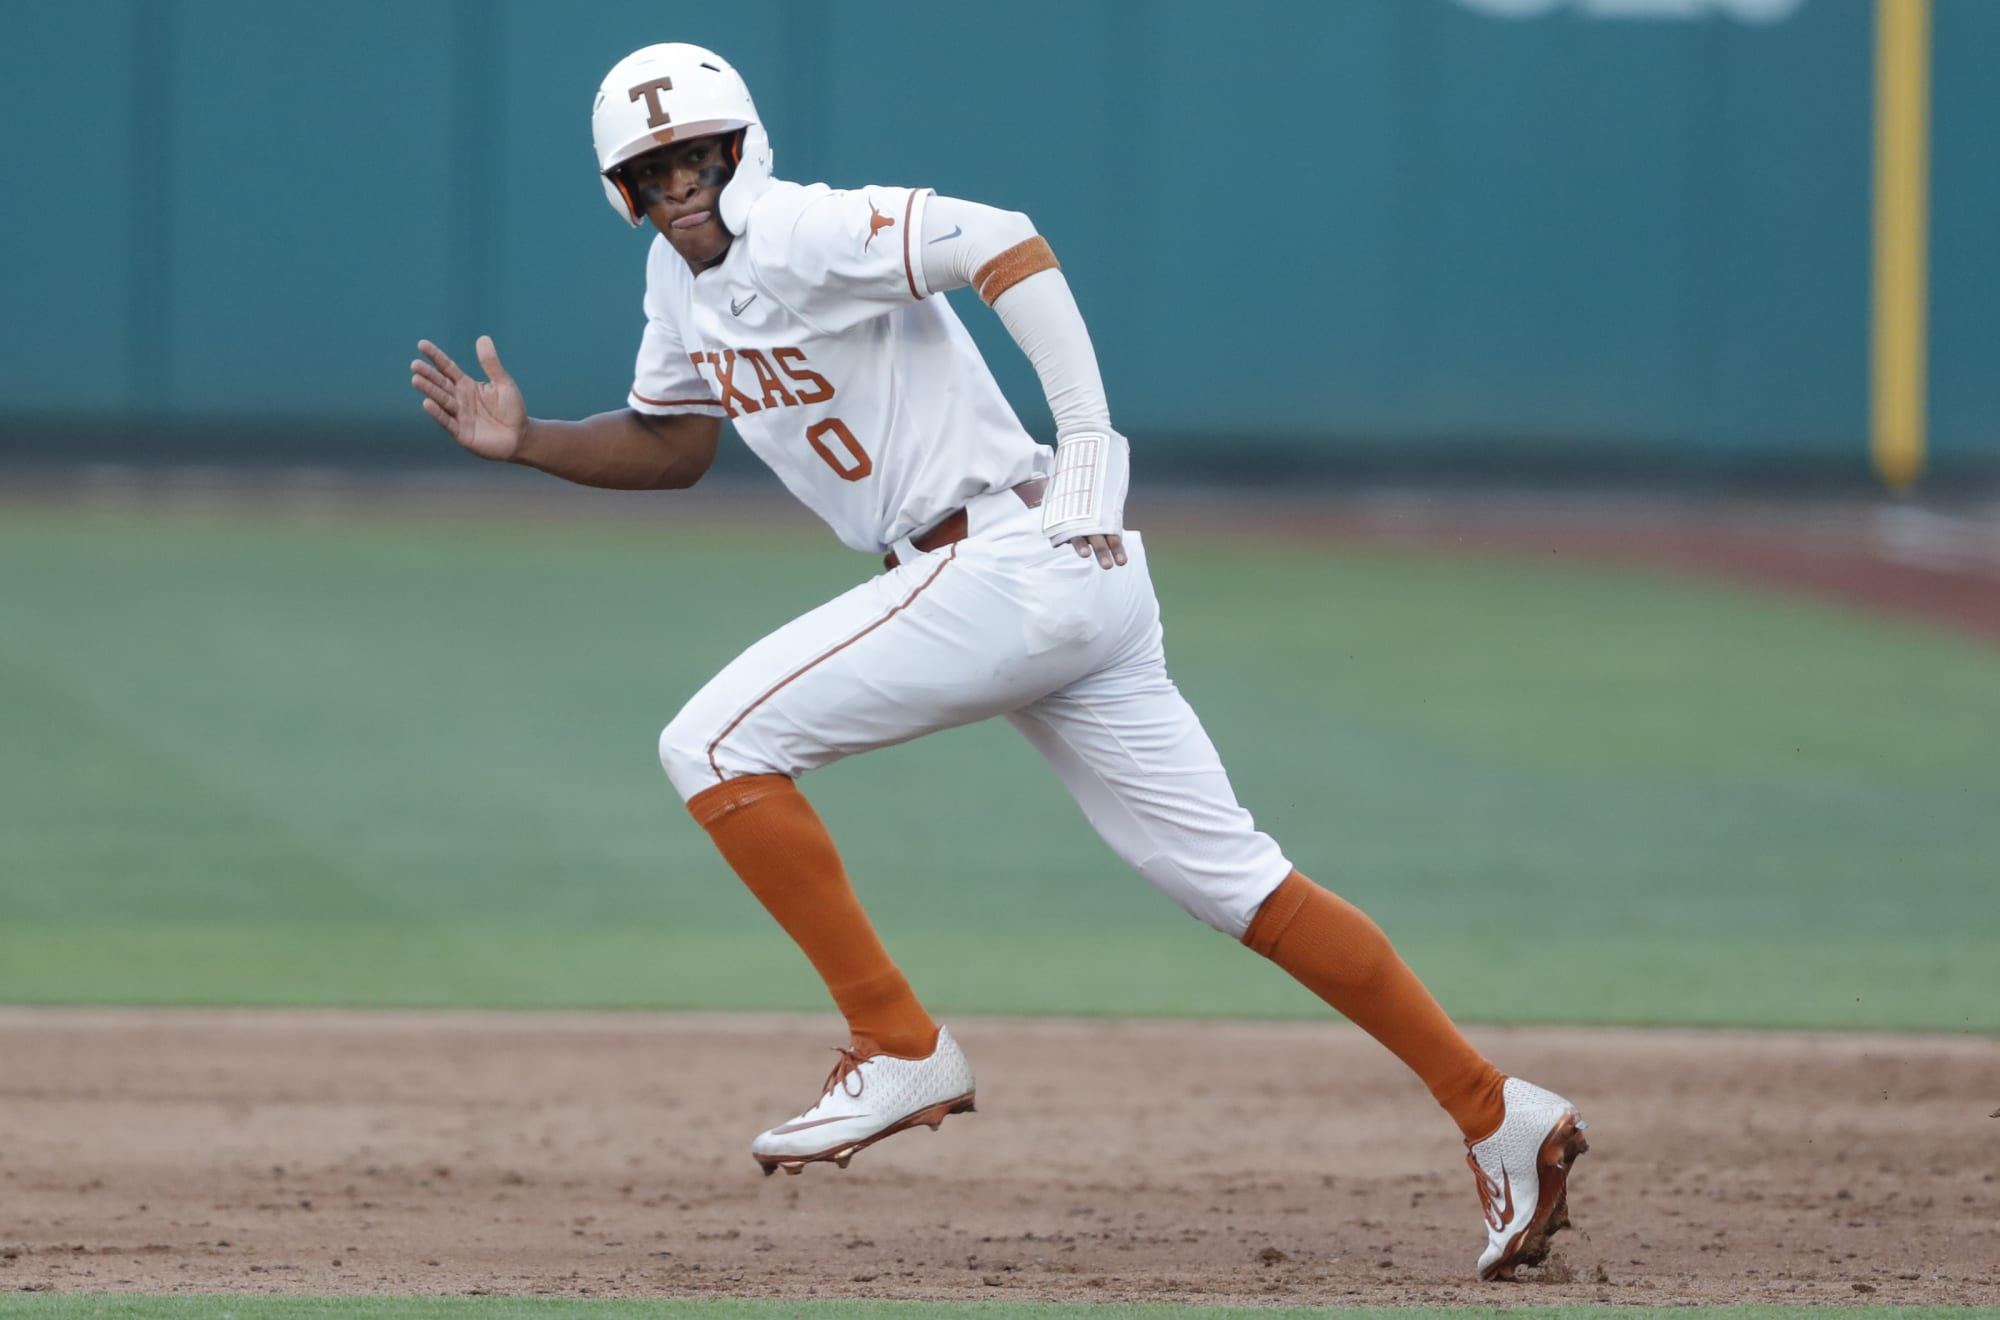 Texas Baseball: Horns advance to CWS after dominant win over USF